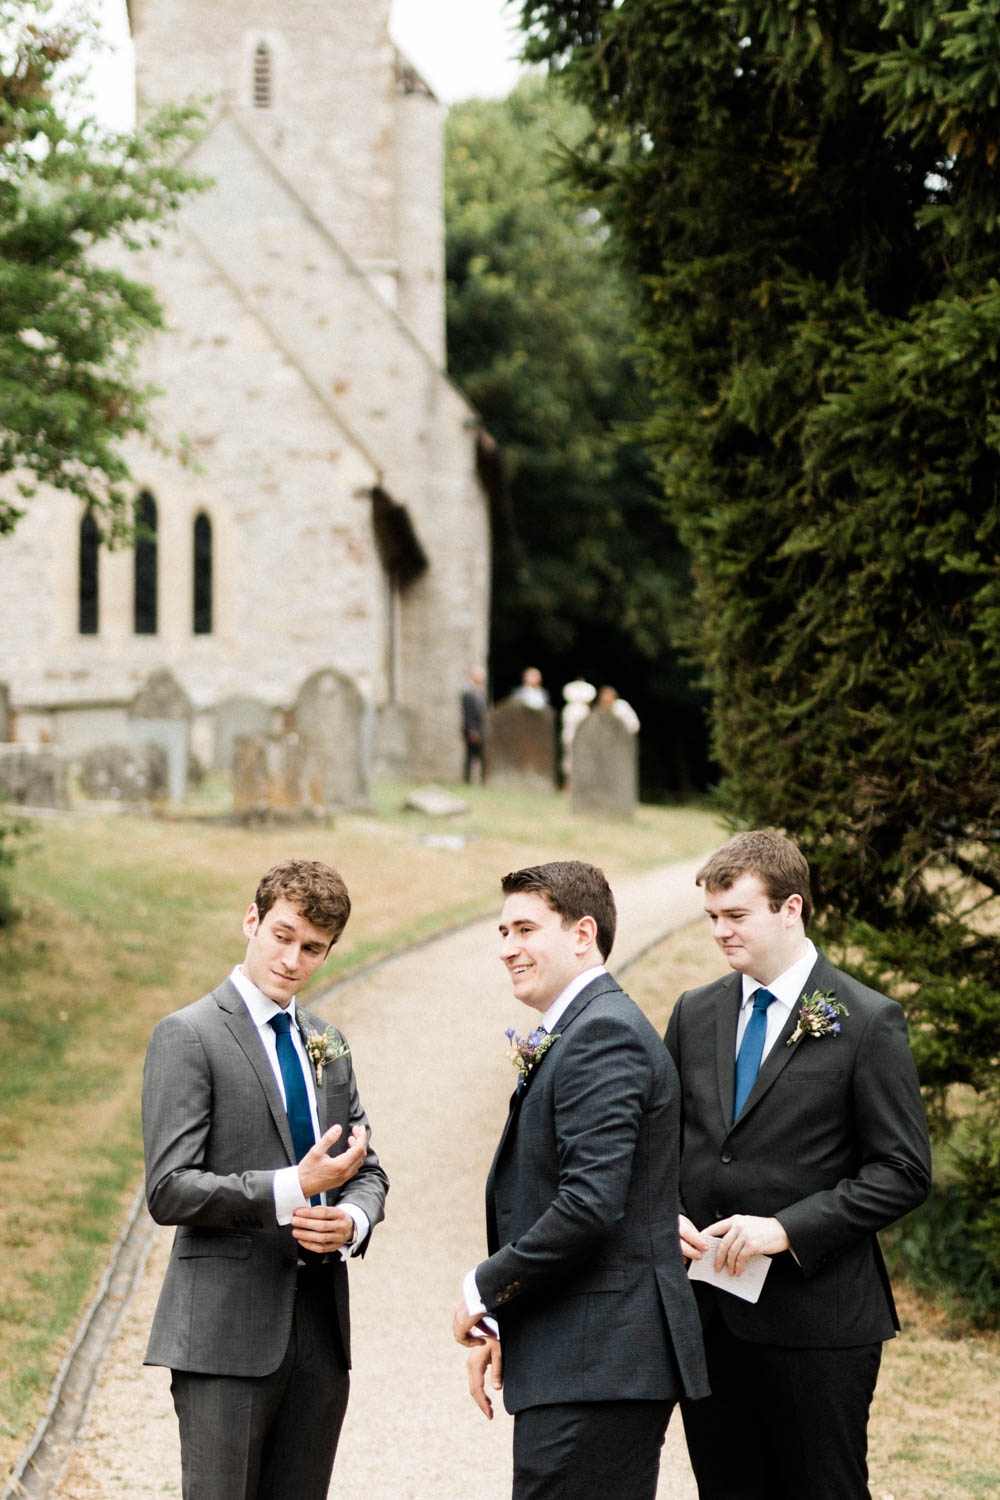 Special-Day-Photography-Hellens-Manor-Much-Marcle-Tudor-Manor-Wedding-the-groomsmen-wait-for-guests-outside-a-church.jpg